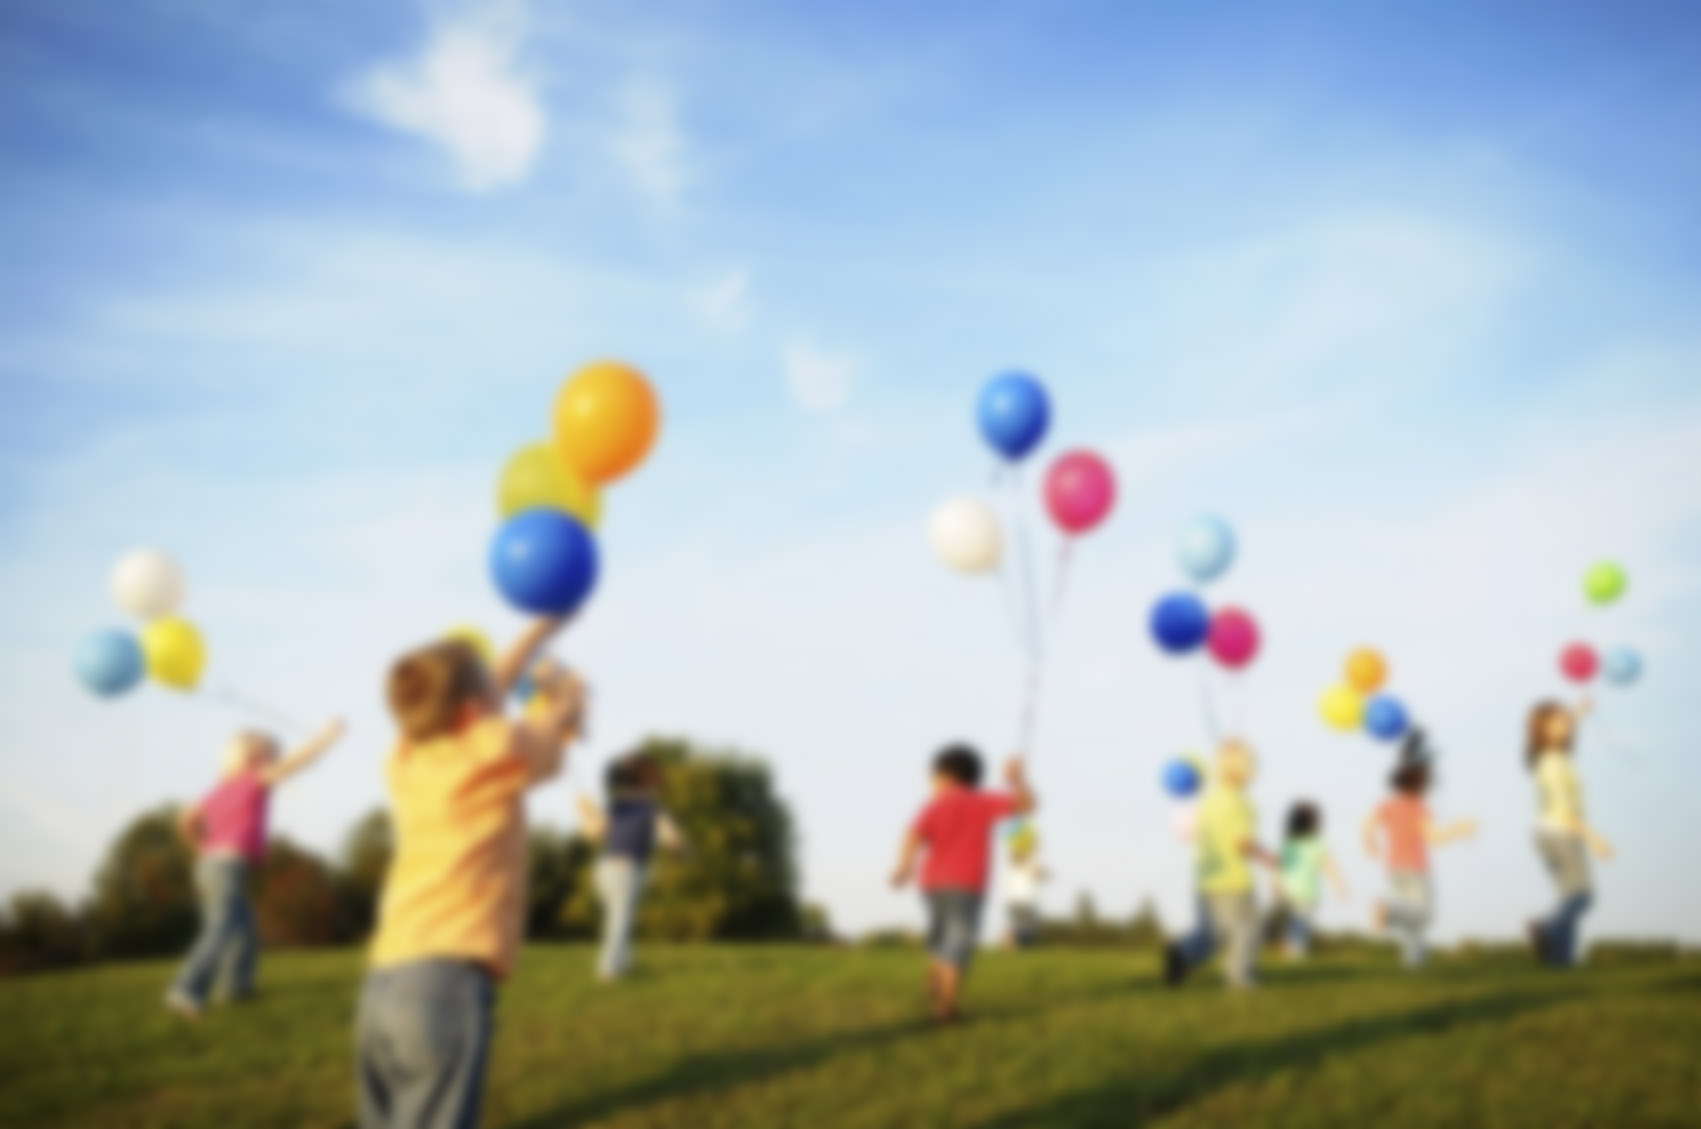 Children-playing-with-balloons-images